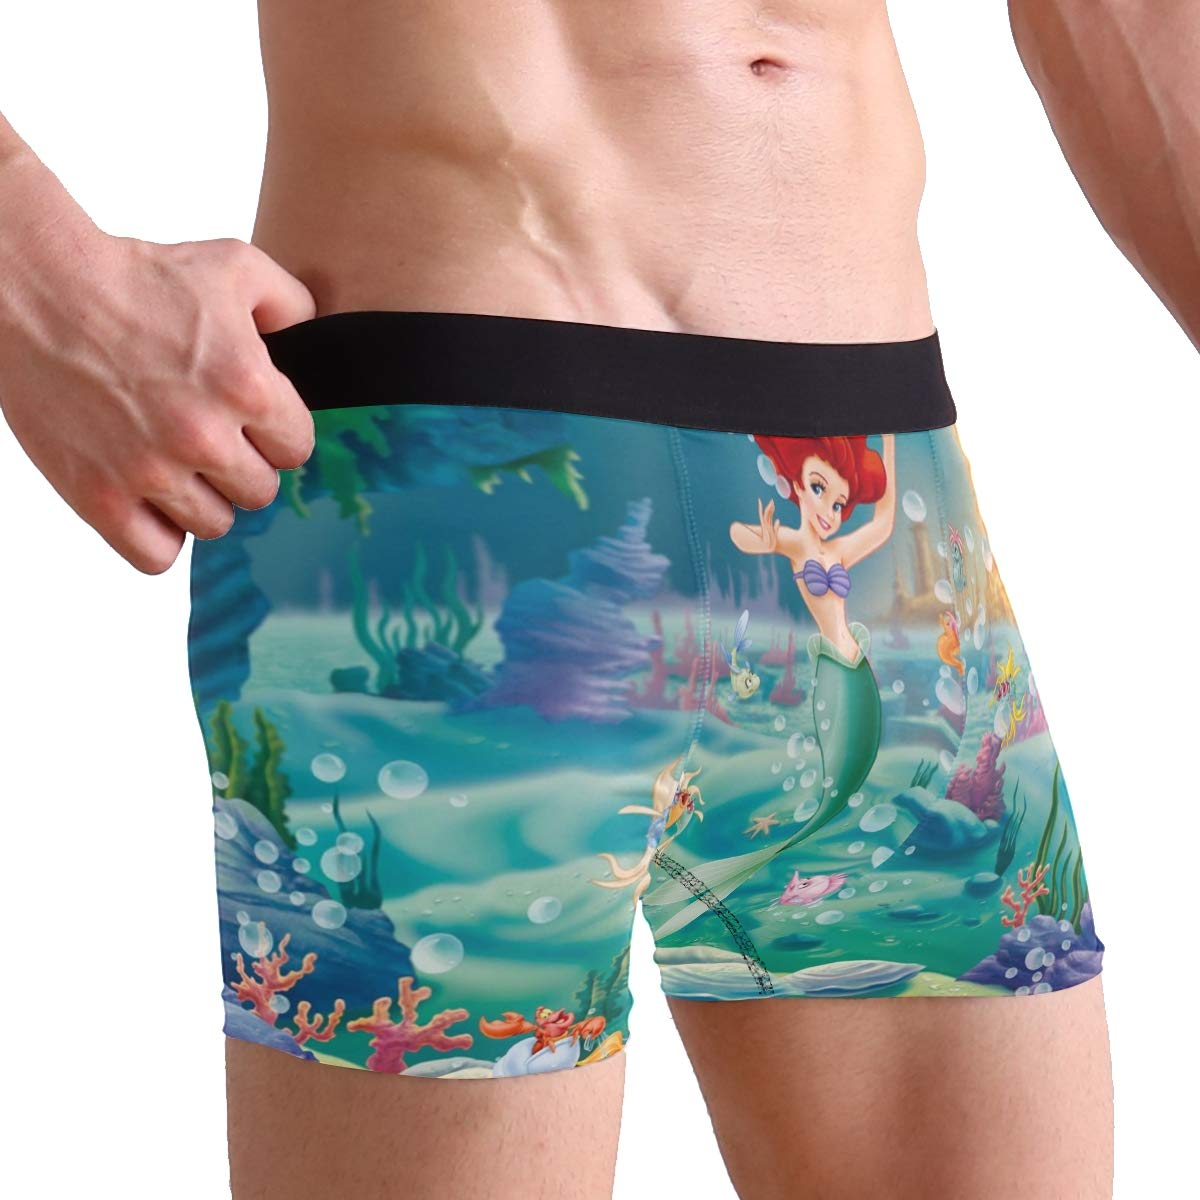 Mens Boxer Briefs Stretch Breathable Trunks Low Rise The Little Mermaid Underwear for Men Boys